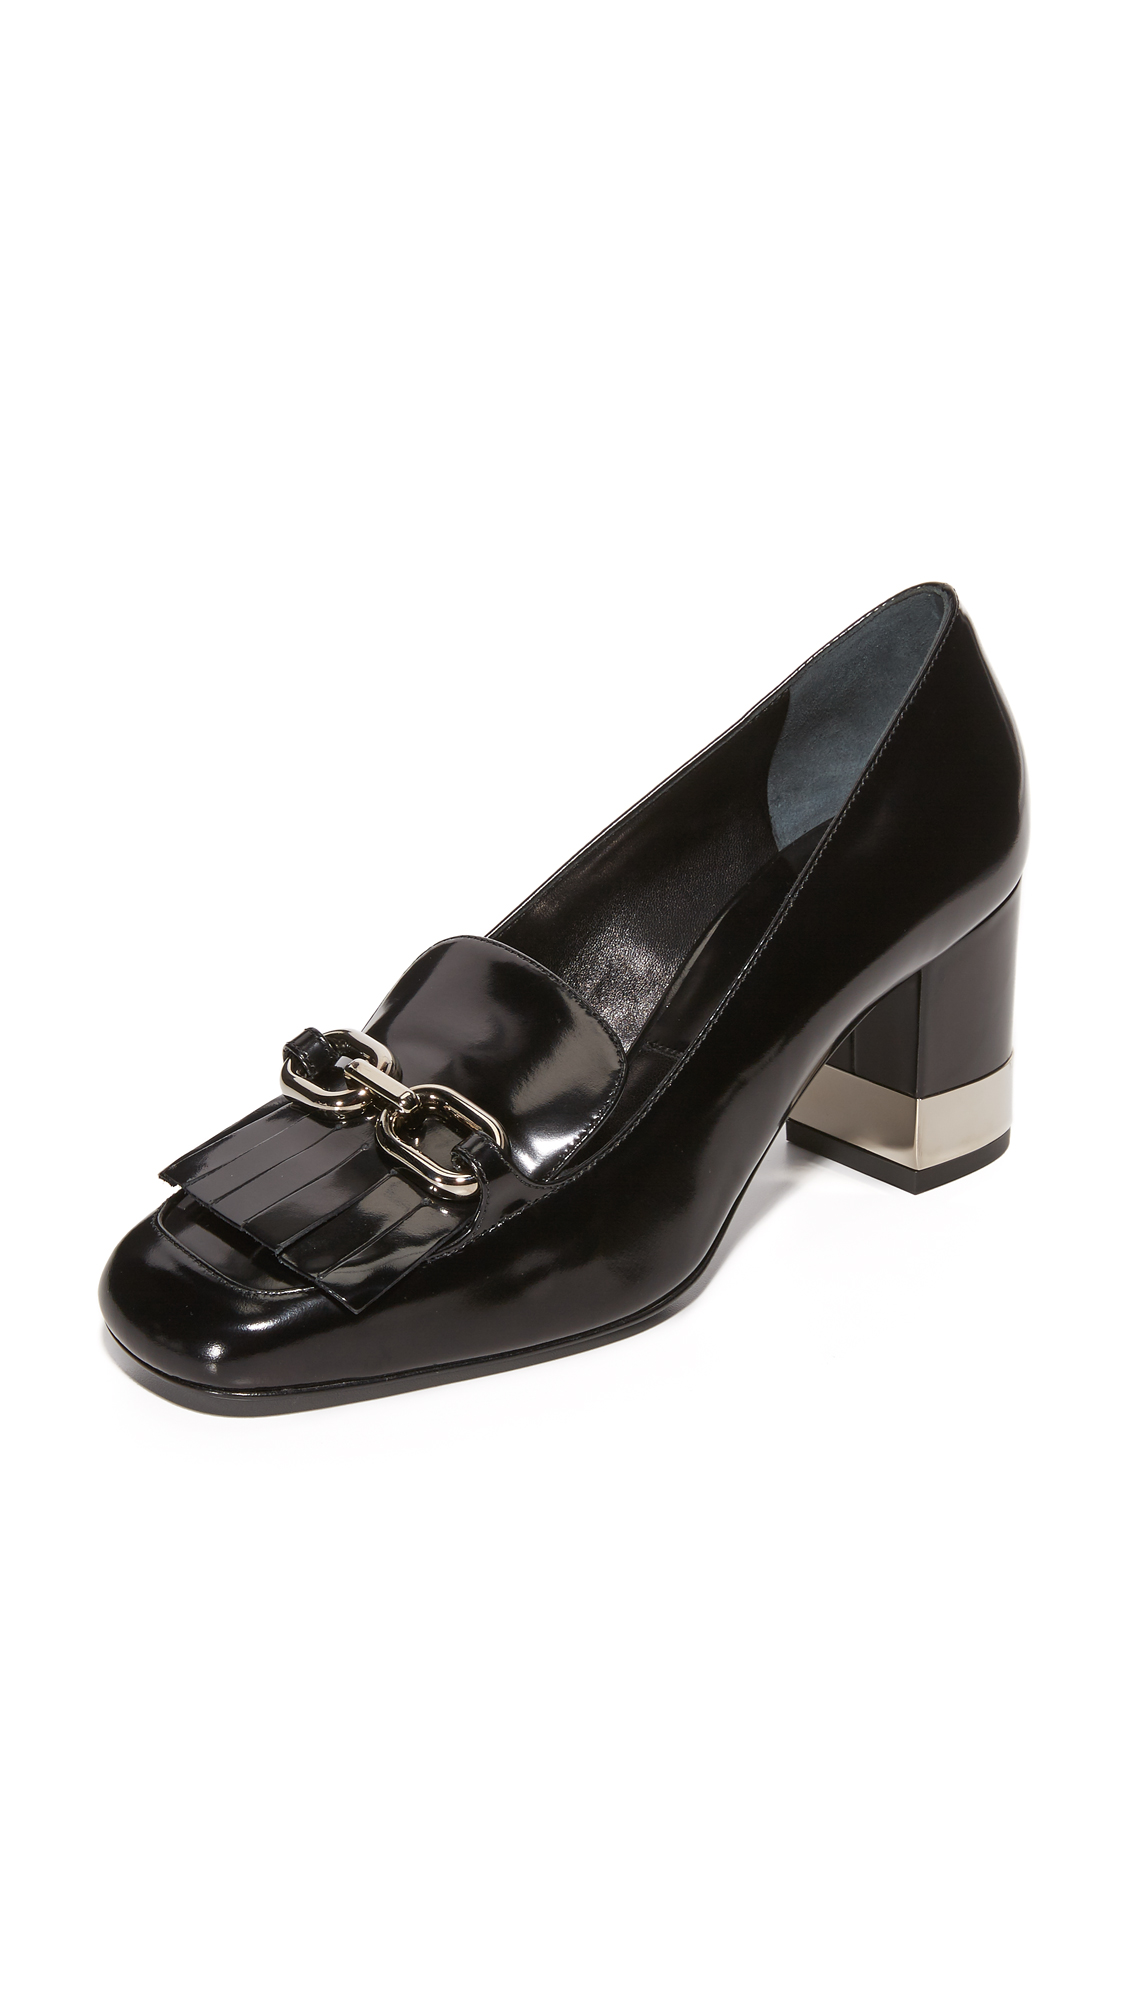 Photo of Michael Kors Collection Carrie Runway Pumps Black - Michael Kors Collection online